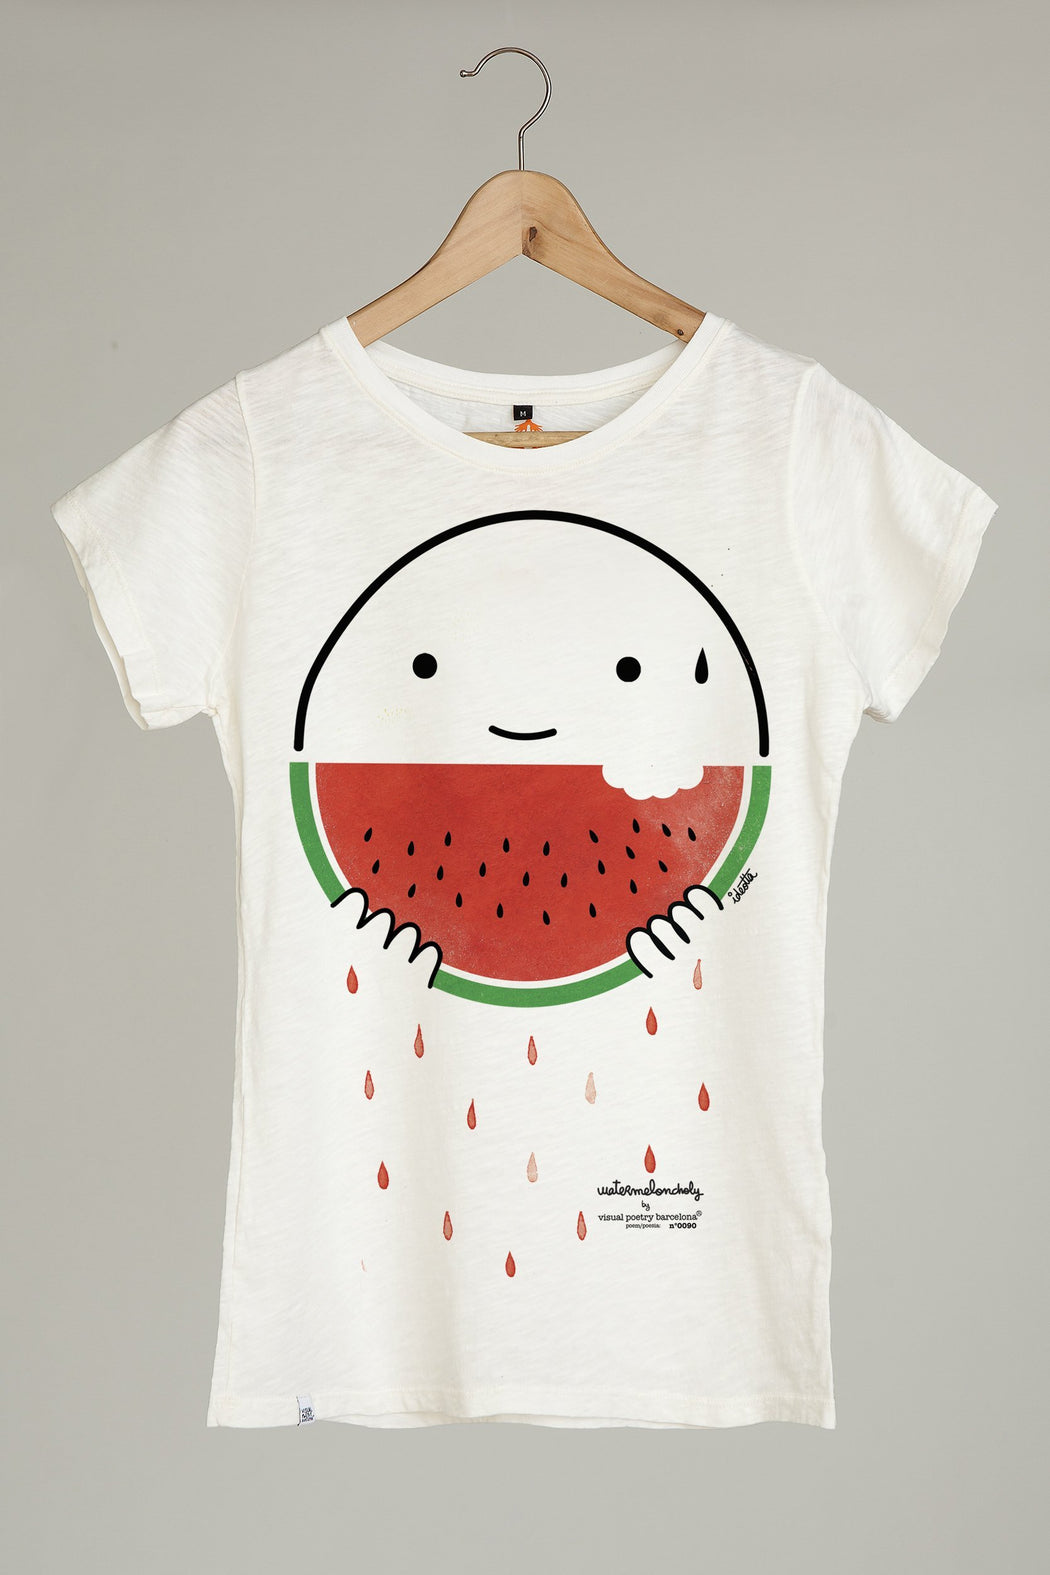 "Camiseta mujer. ""watermeloncholy"" - Visual Poetry Barcelona"